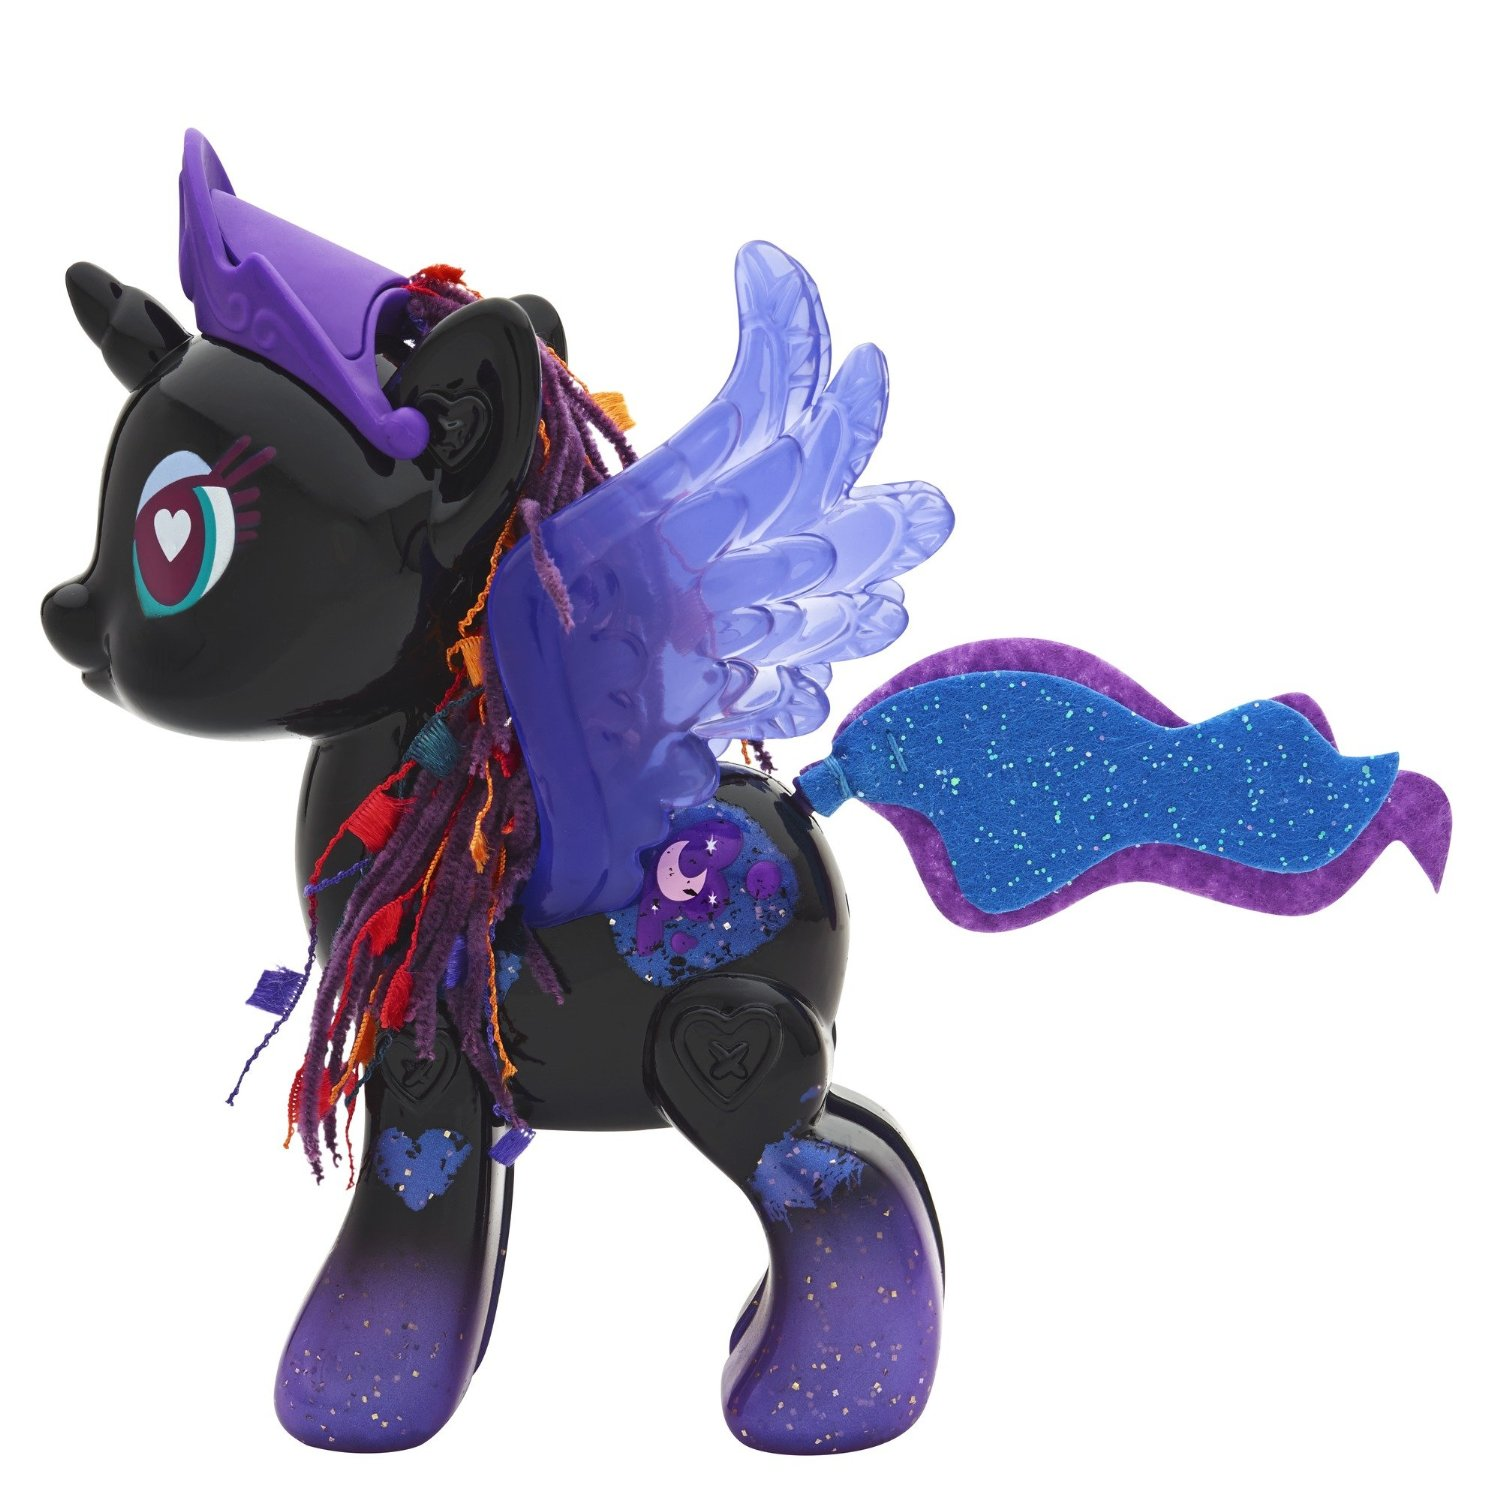 New Hasbro Pop Ponies Listed On Amazon Design A Pony And Wing Kits Mlp Merch